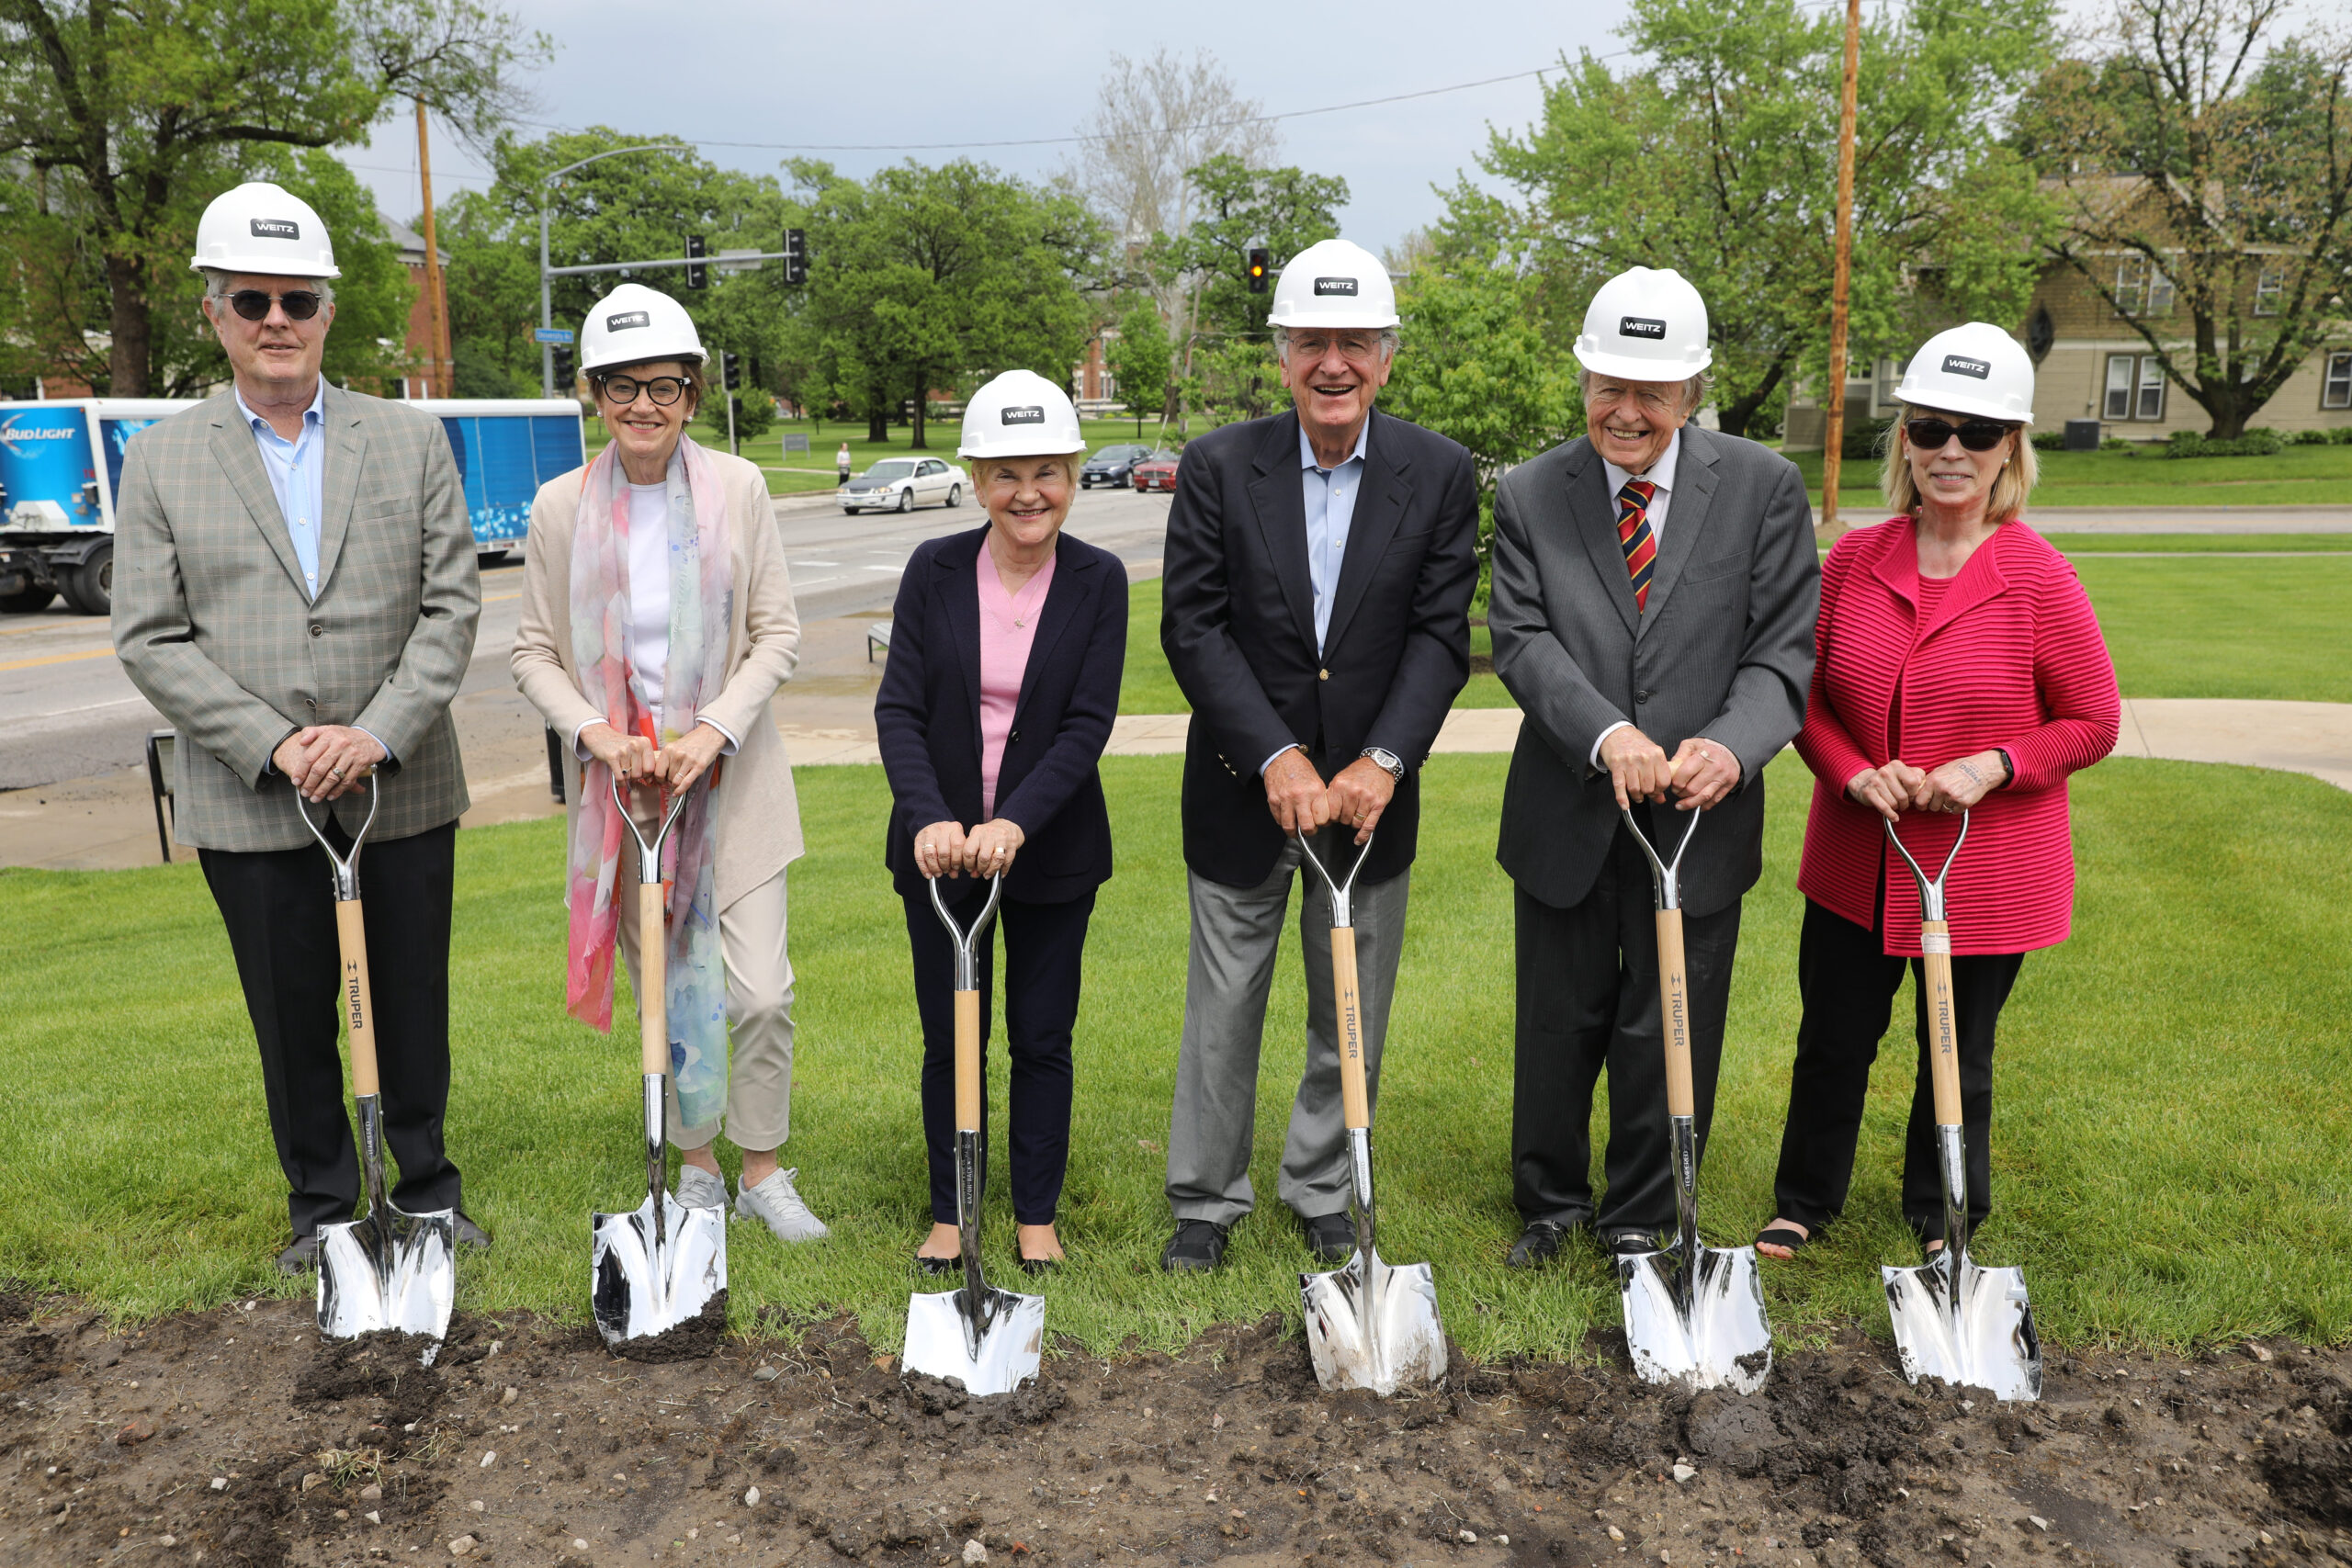 Six people wearing hard hats stand on a patch of dirt holding shovels.